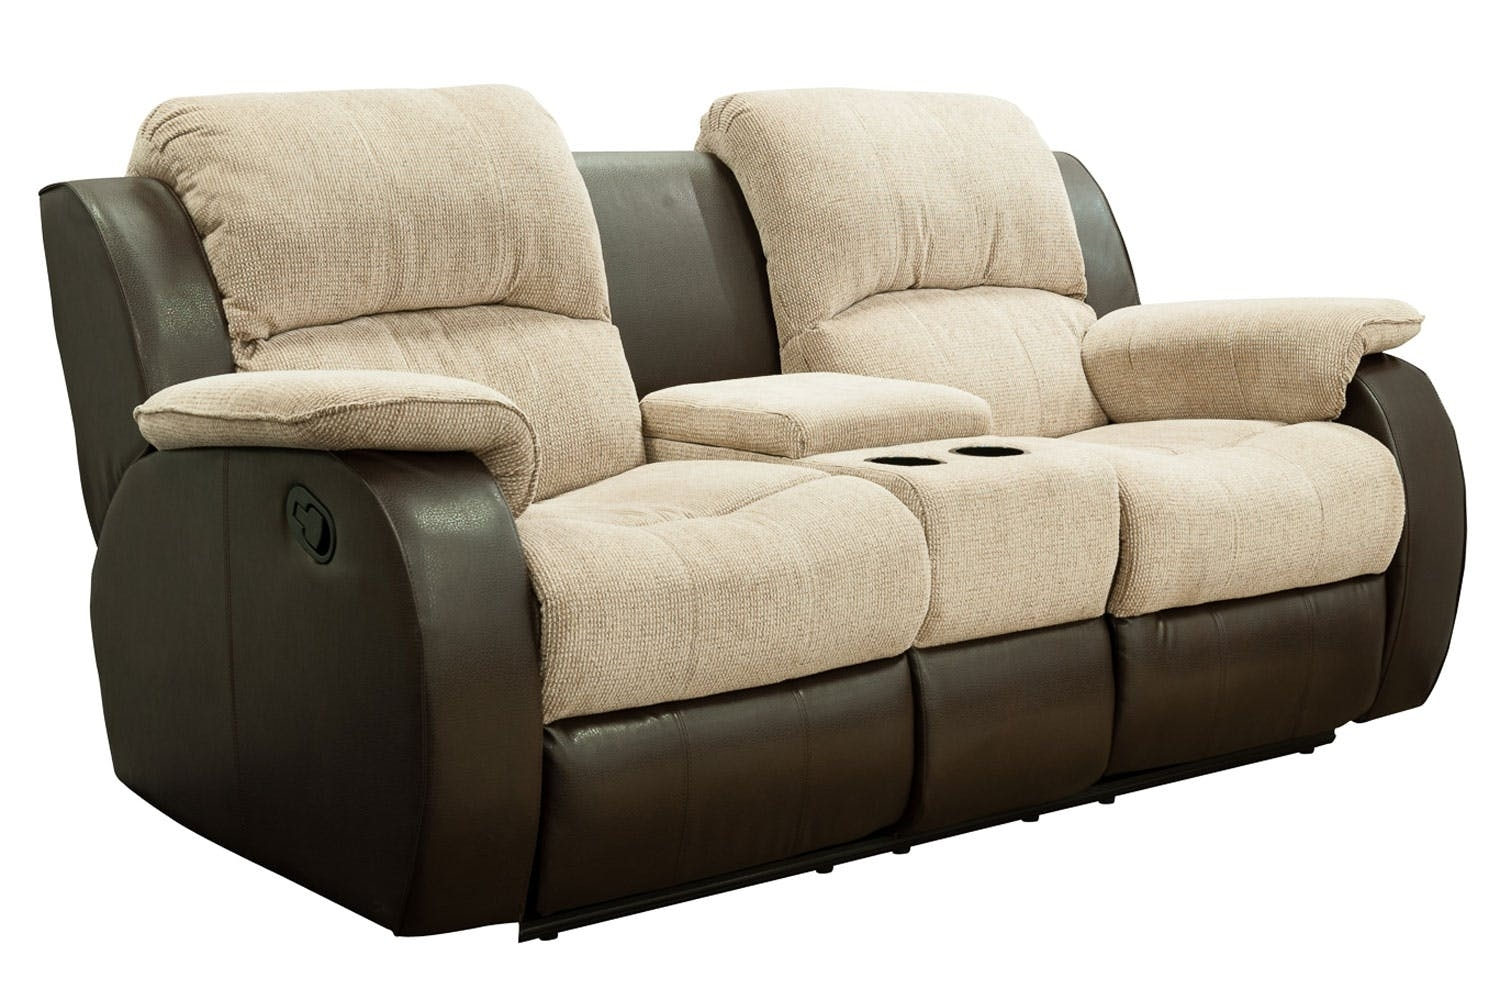 Modern Recliner Sofa In Kayde Console Harvey Norman Ireland Prepare For Recliner Sofas (View 7 of 10)